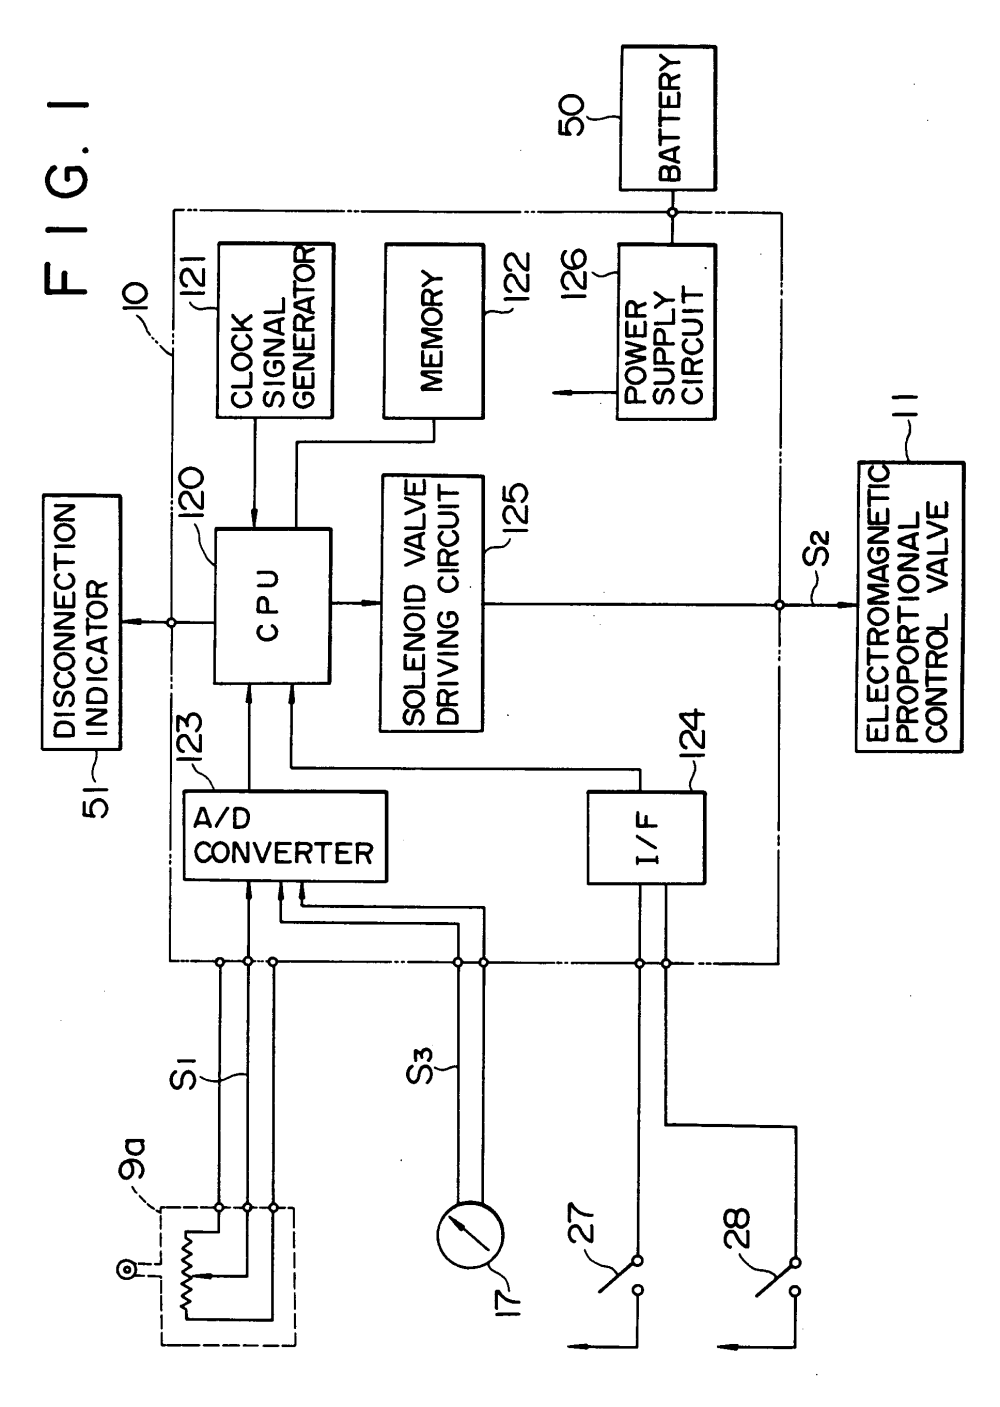 medium resolution of clark forklift steering cylinder diagram patent ep0509659b1 a lifting device with control system